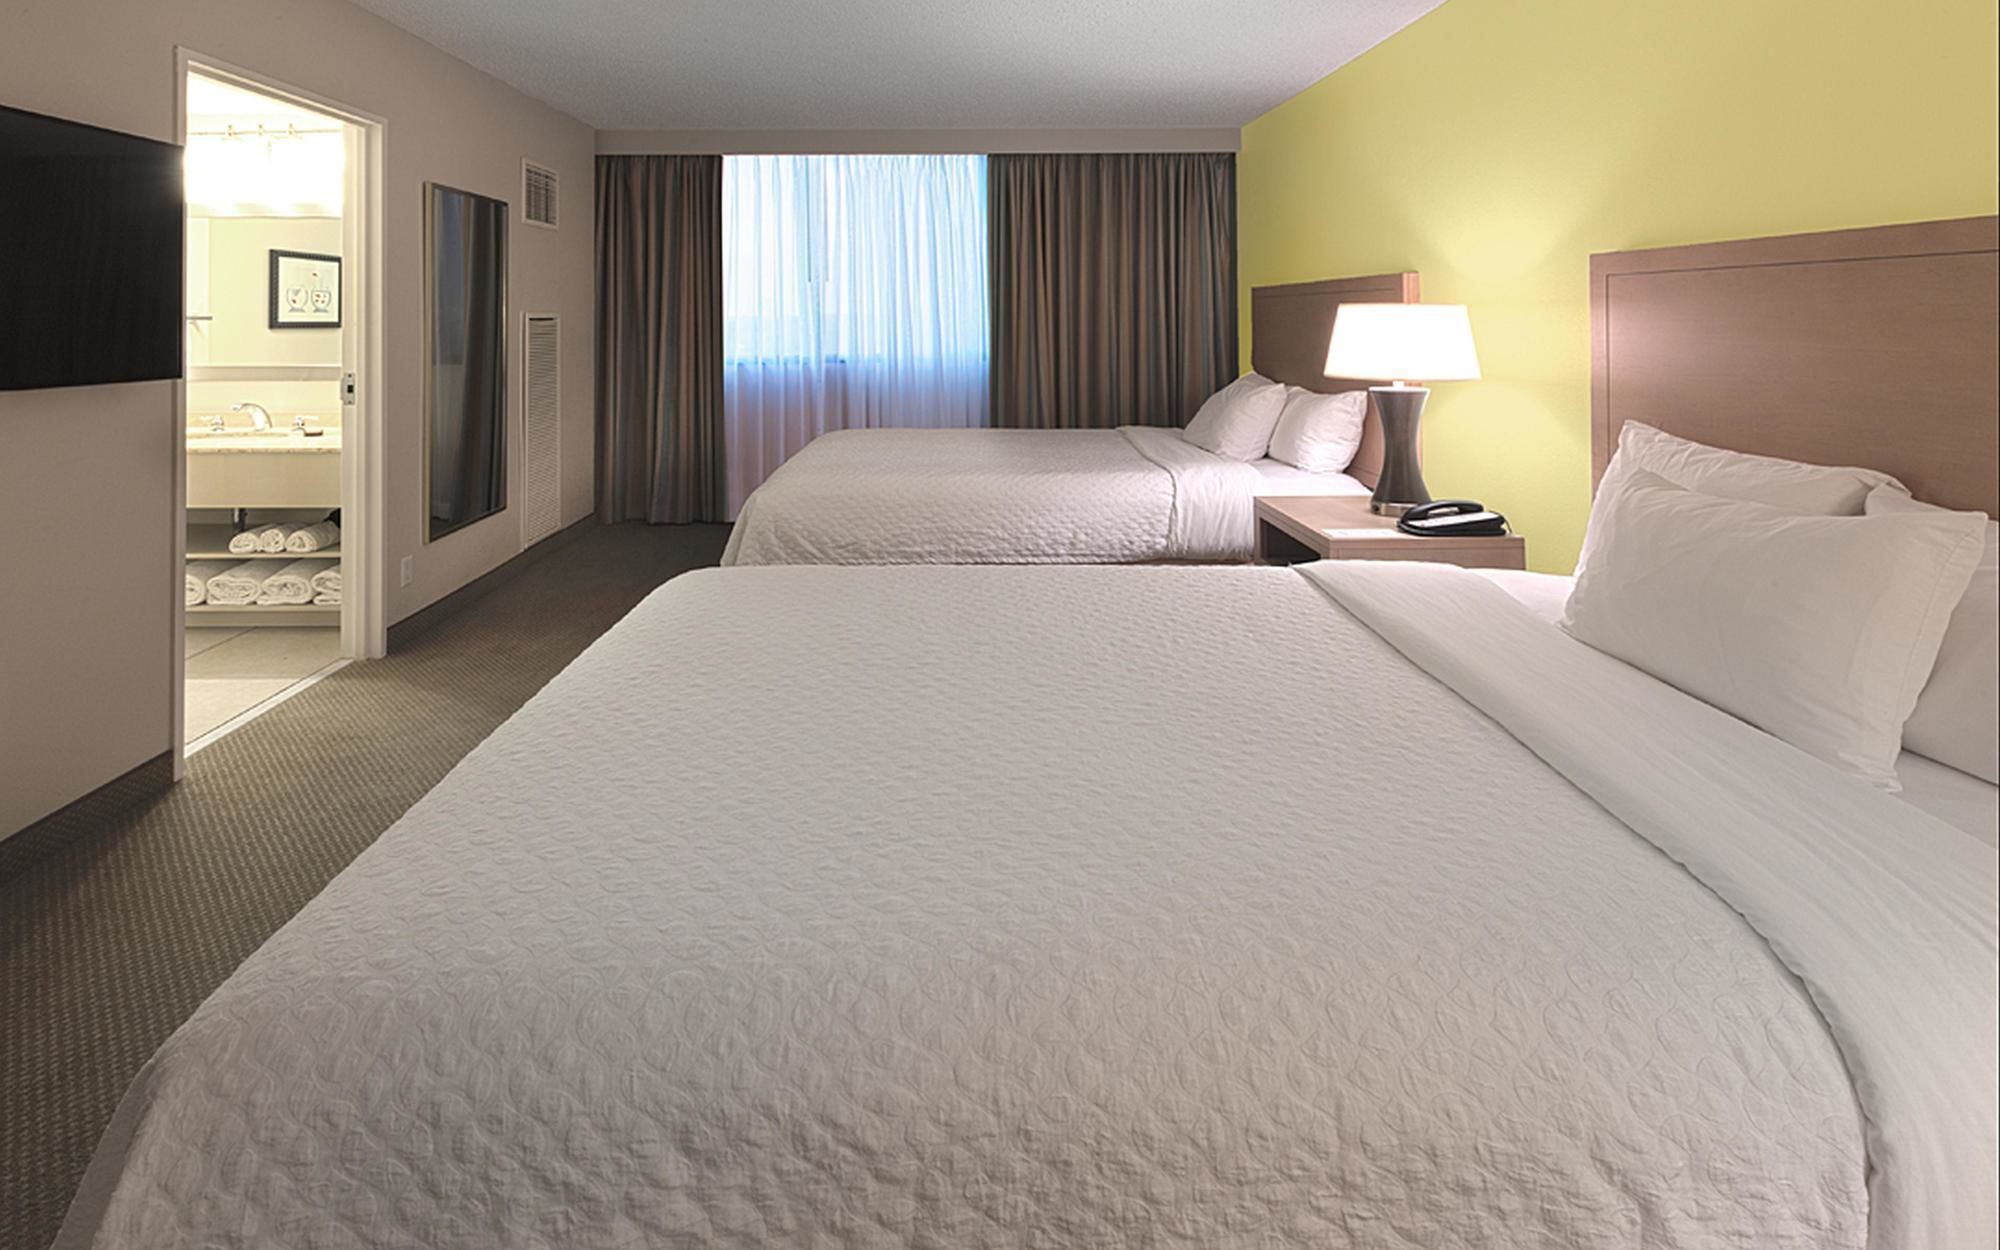 Tampa Hotel Coupons For Tampa Florida Freehotelcoupons Com